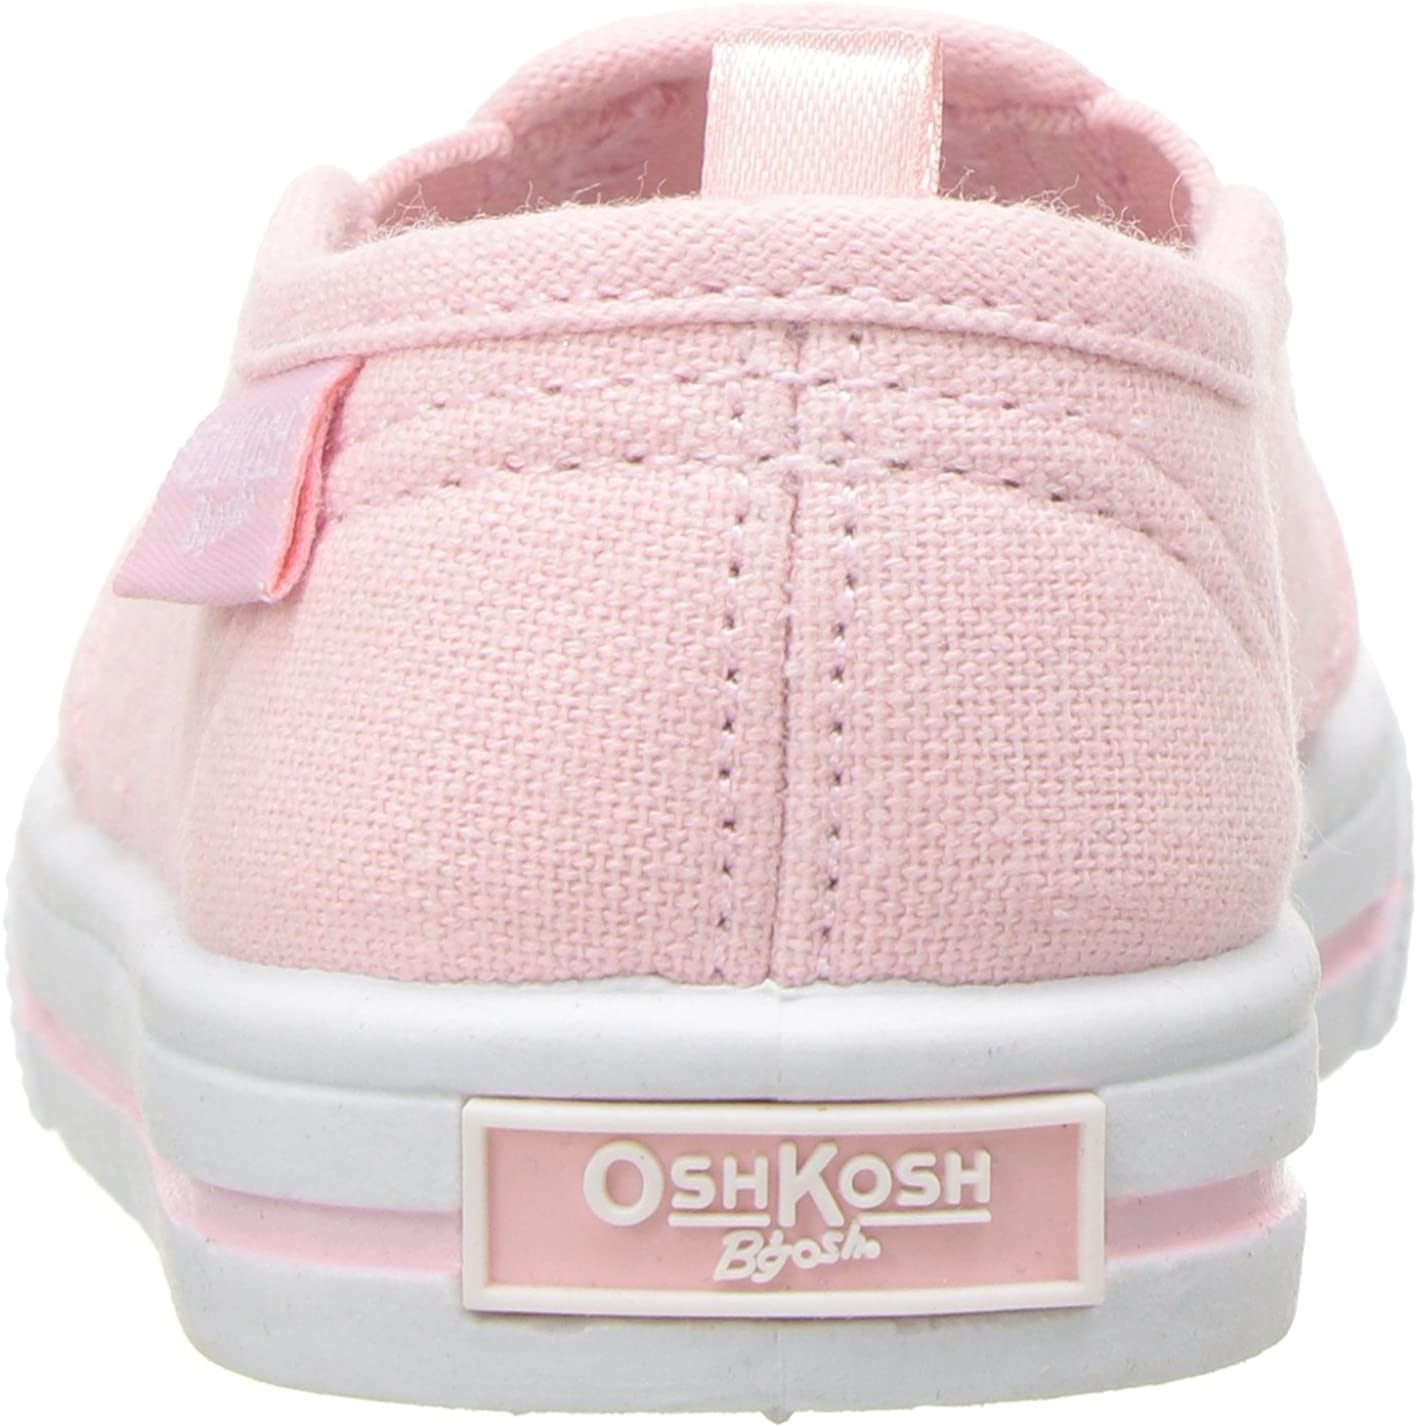 OshKosh BGosh Kids Donuts Girls Embroidered Slip-On Loafer Flat